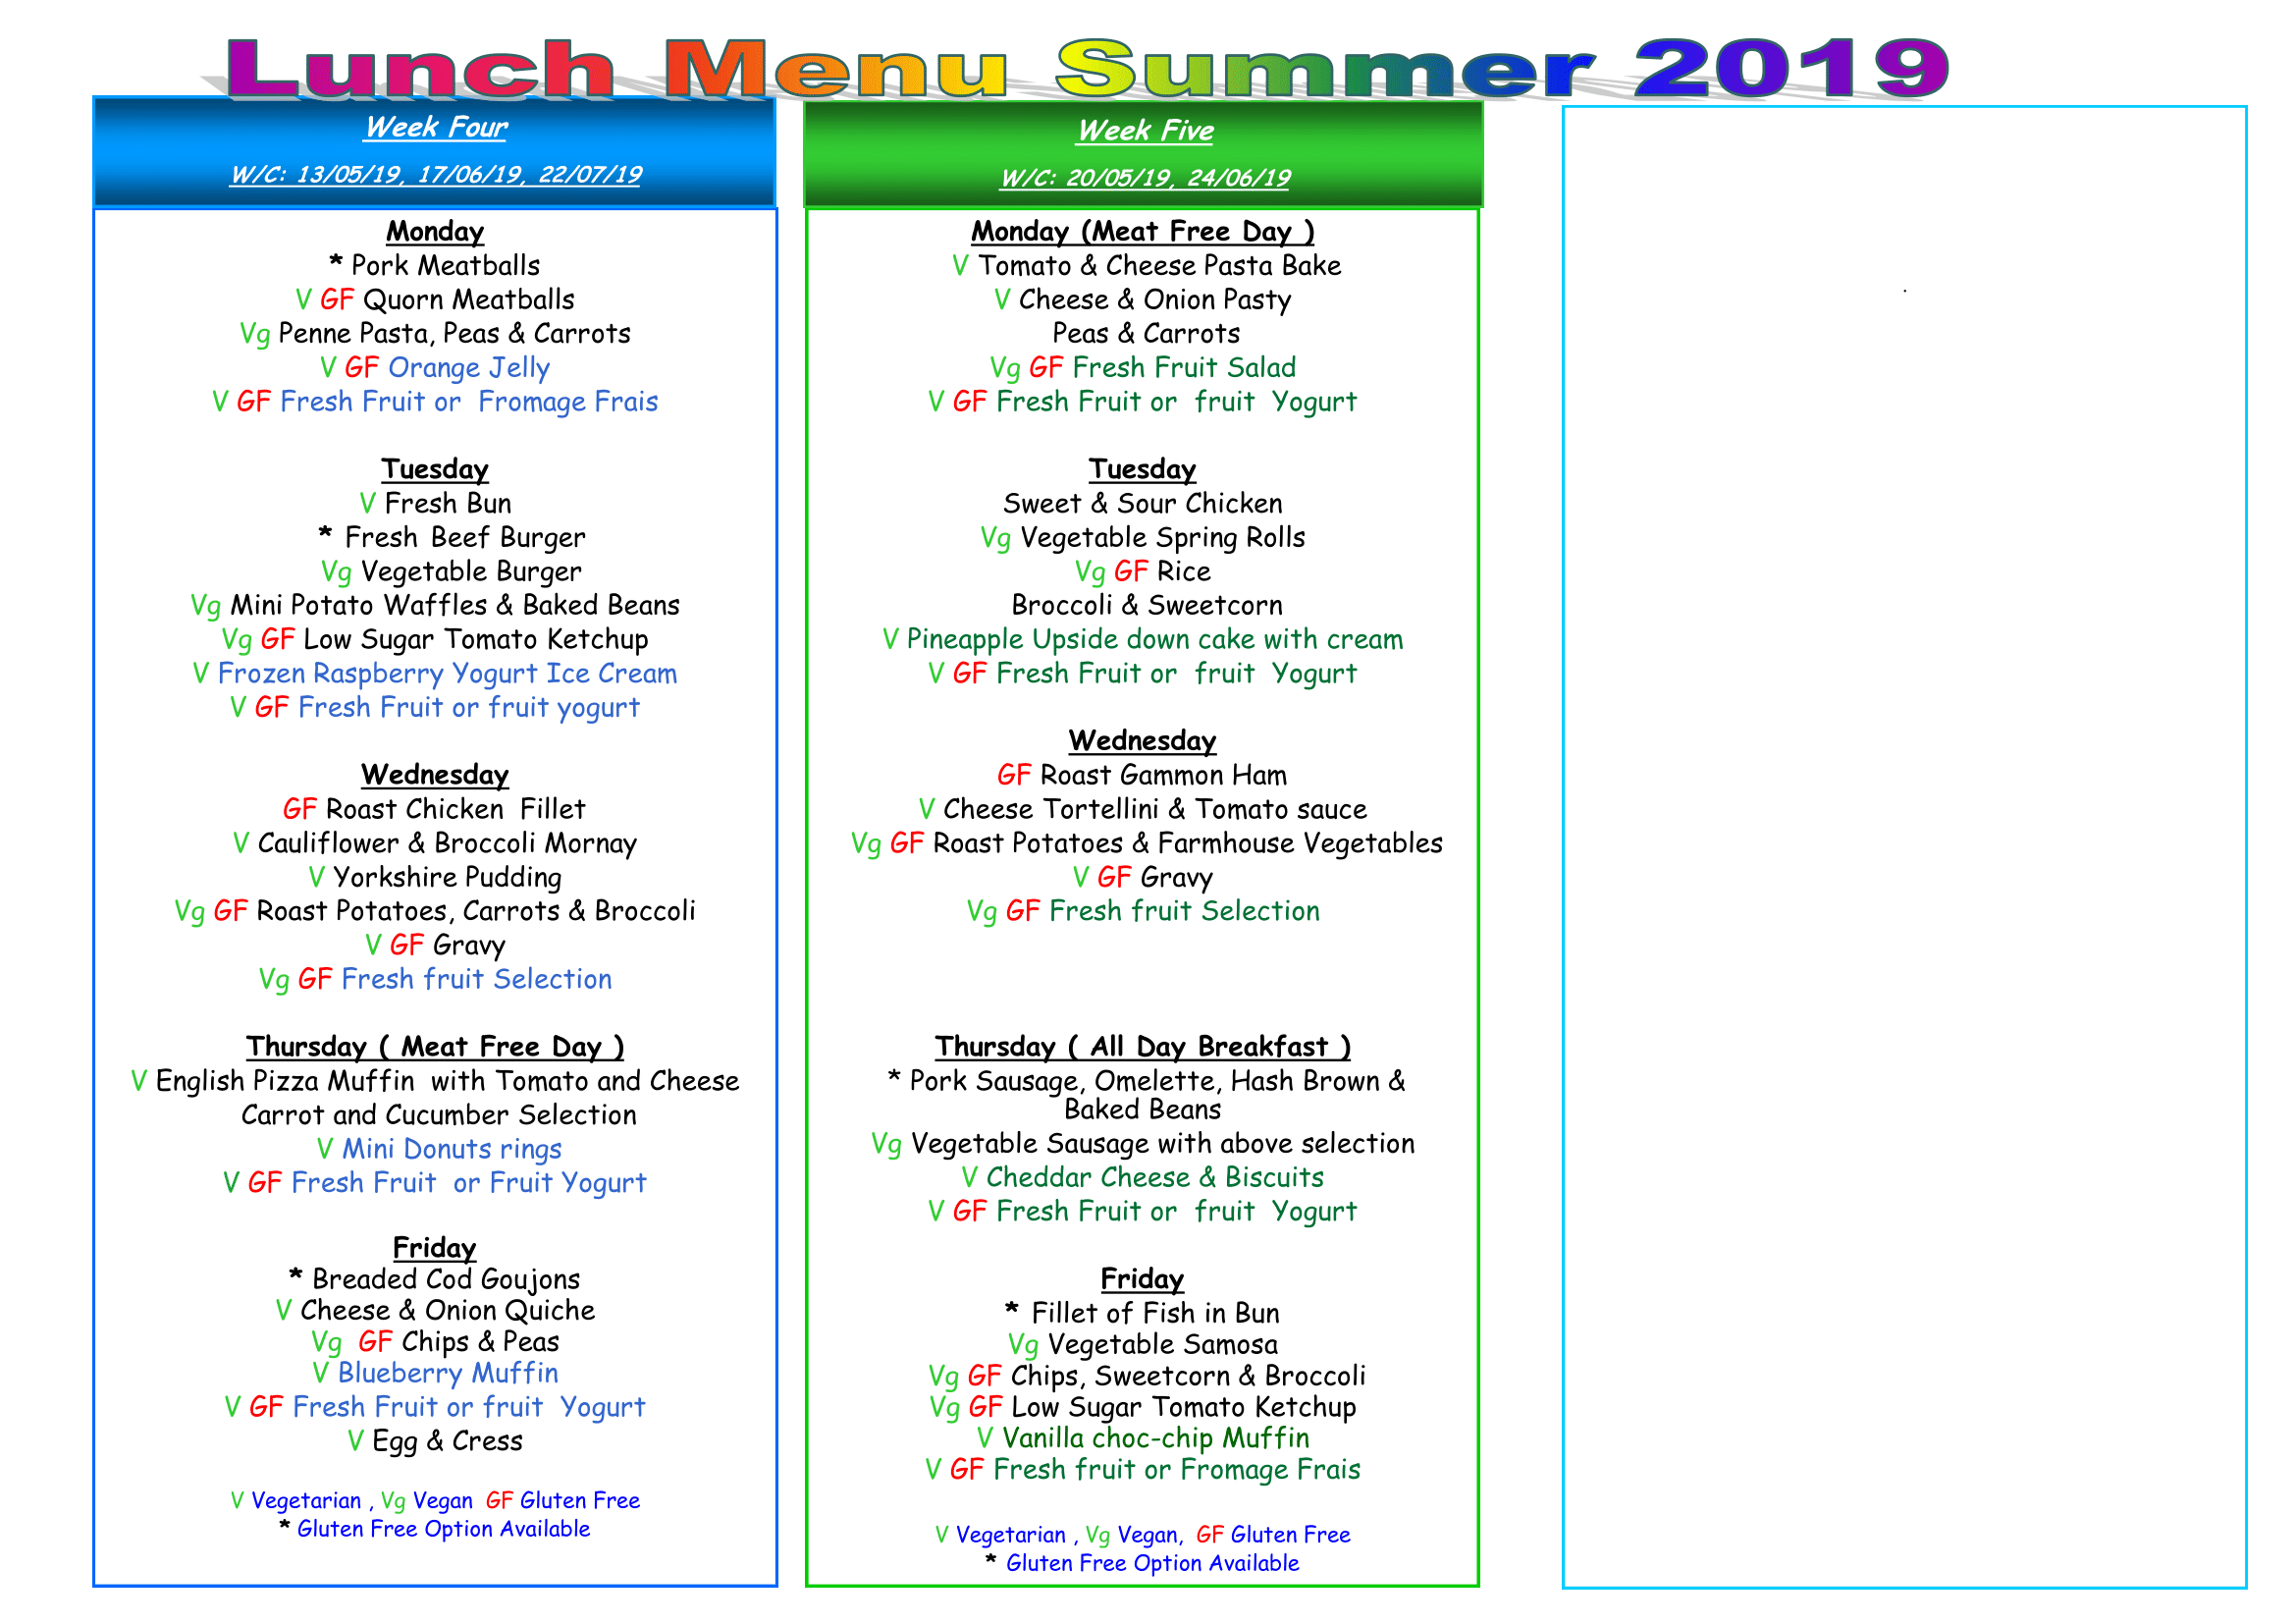 Menu Hot Summer 2019 final 2